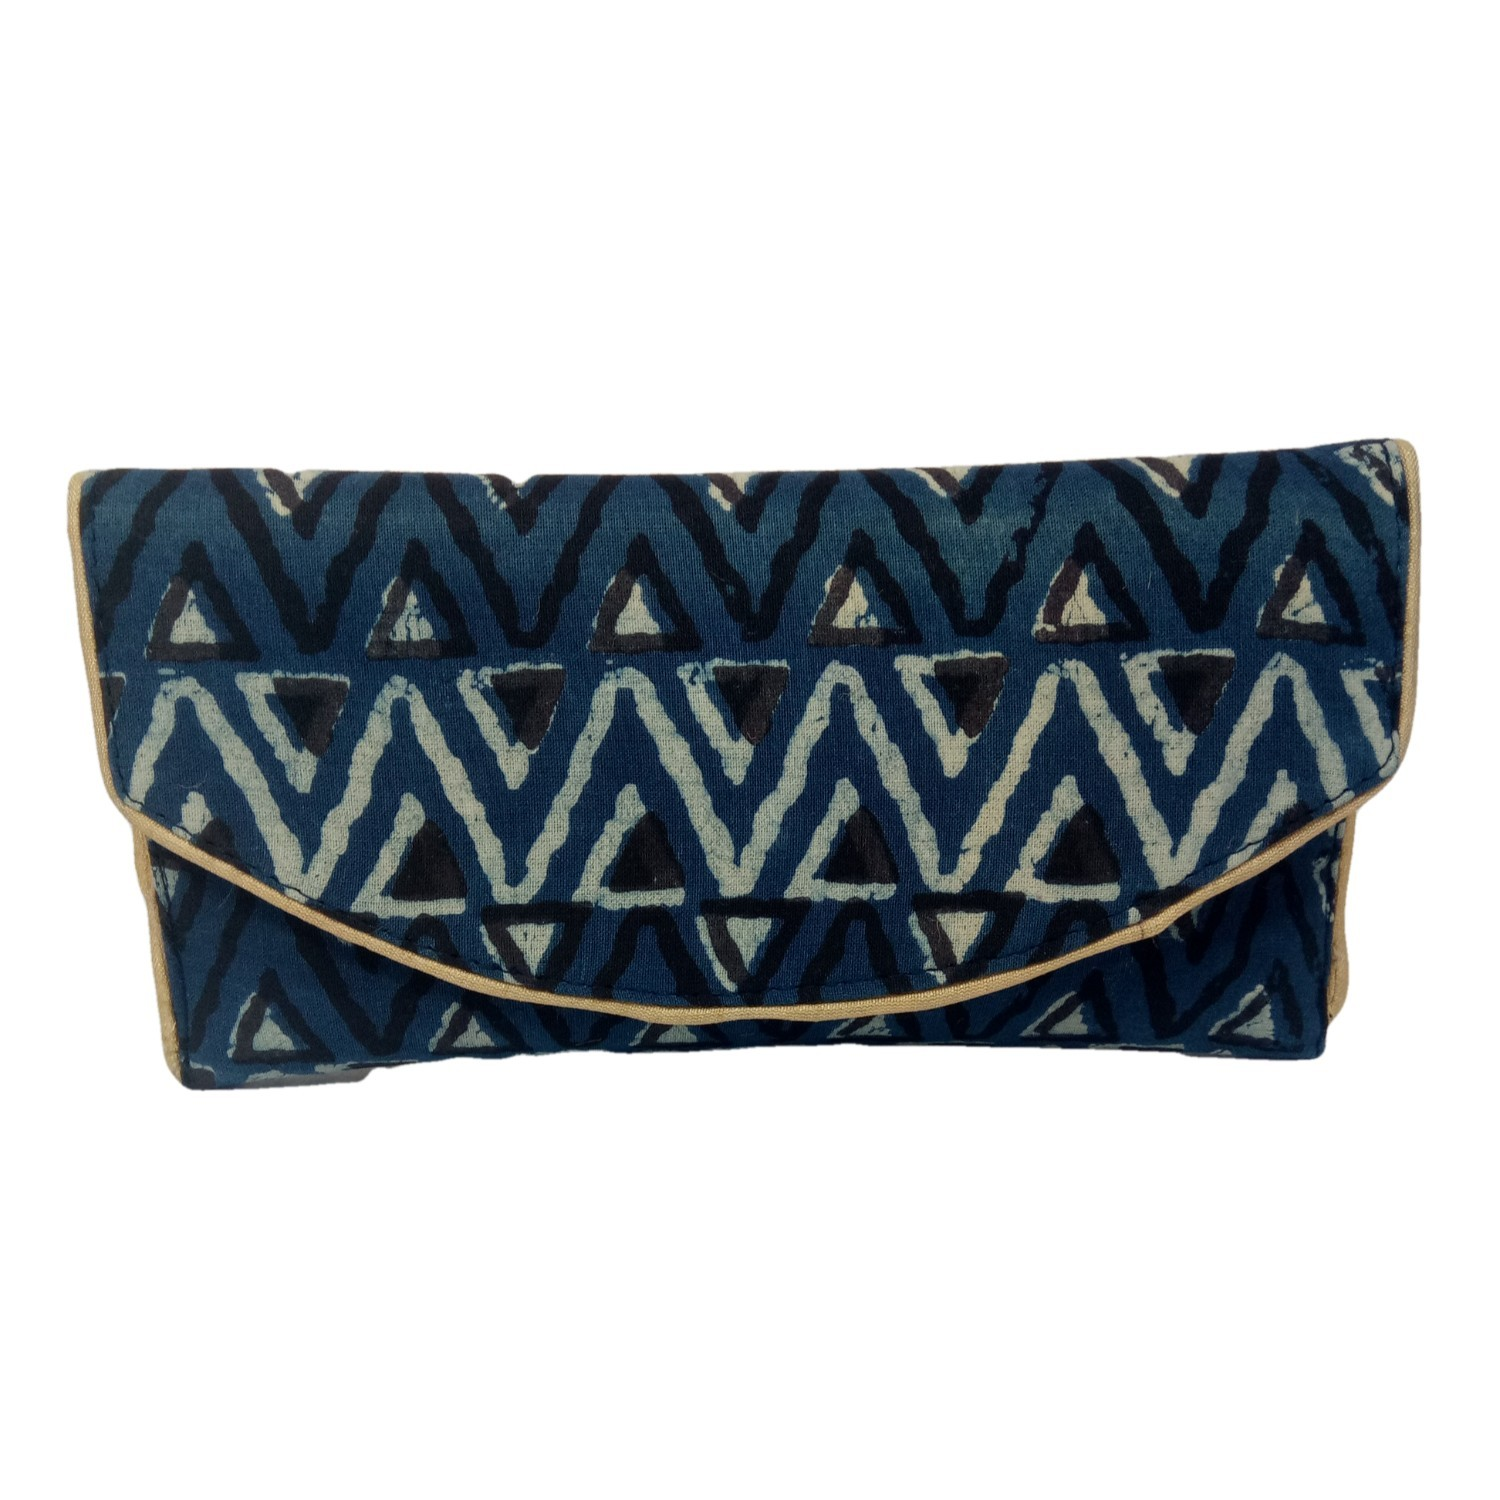 Handmade Excellent Blue Genuine Clutch by Women Self Help Groups of Rajasthan